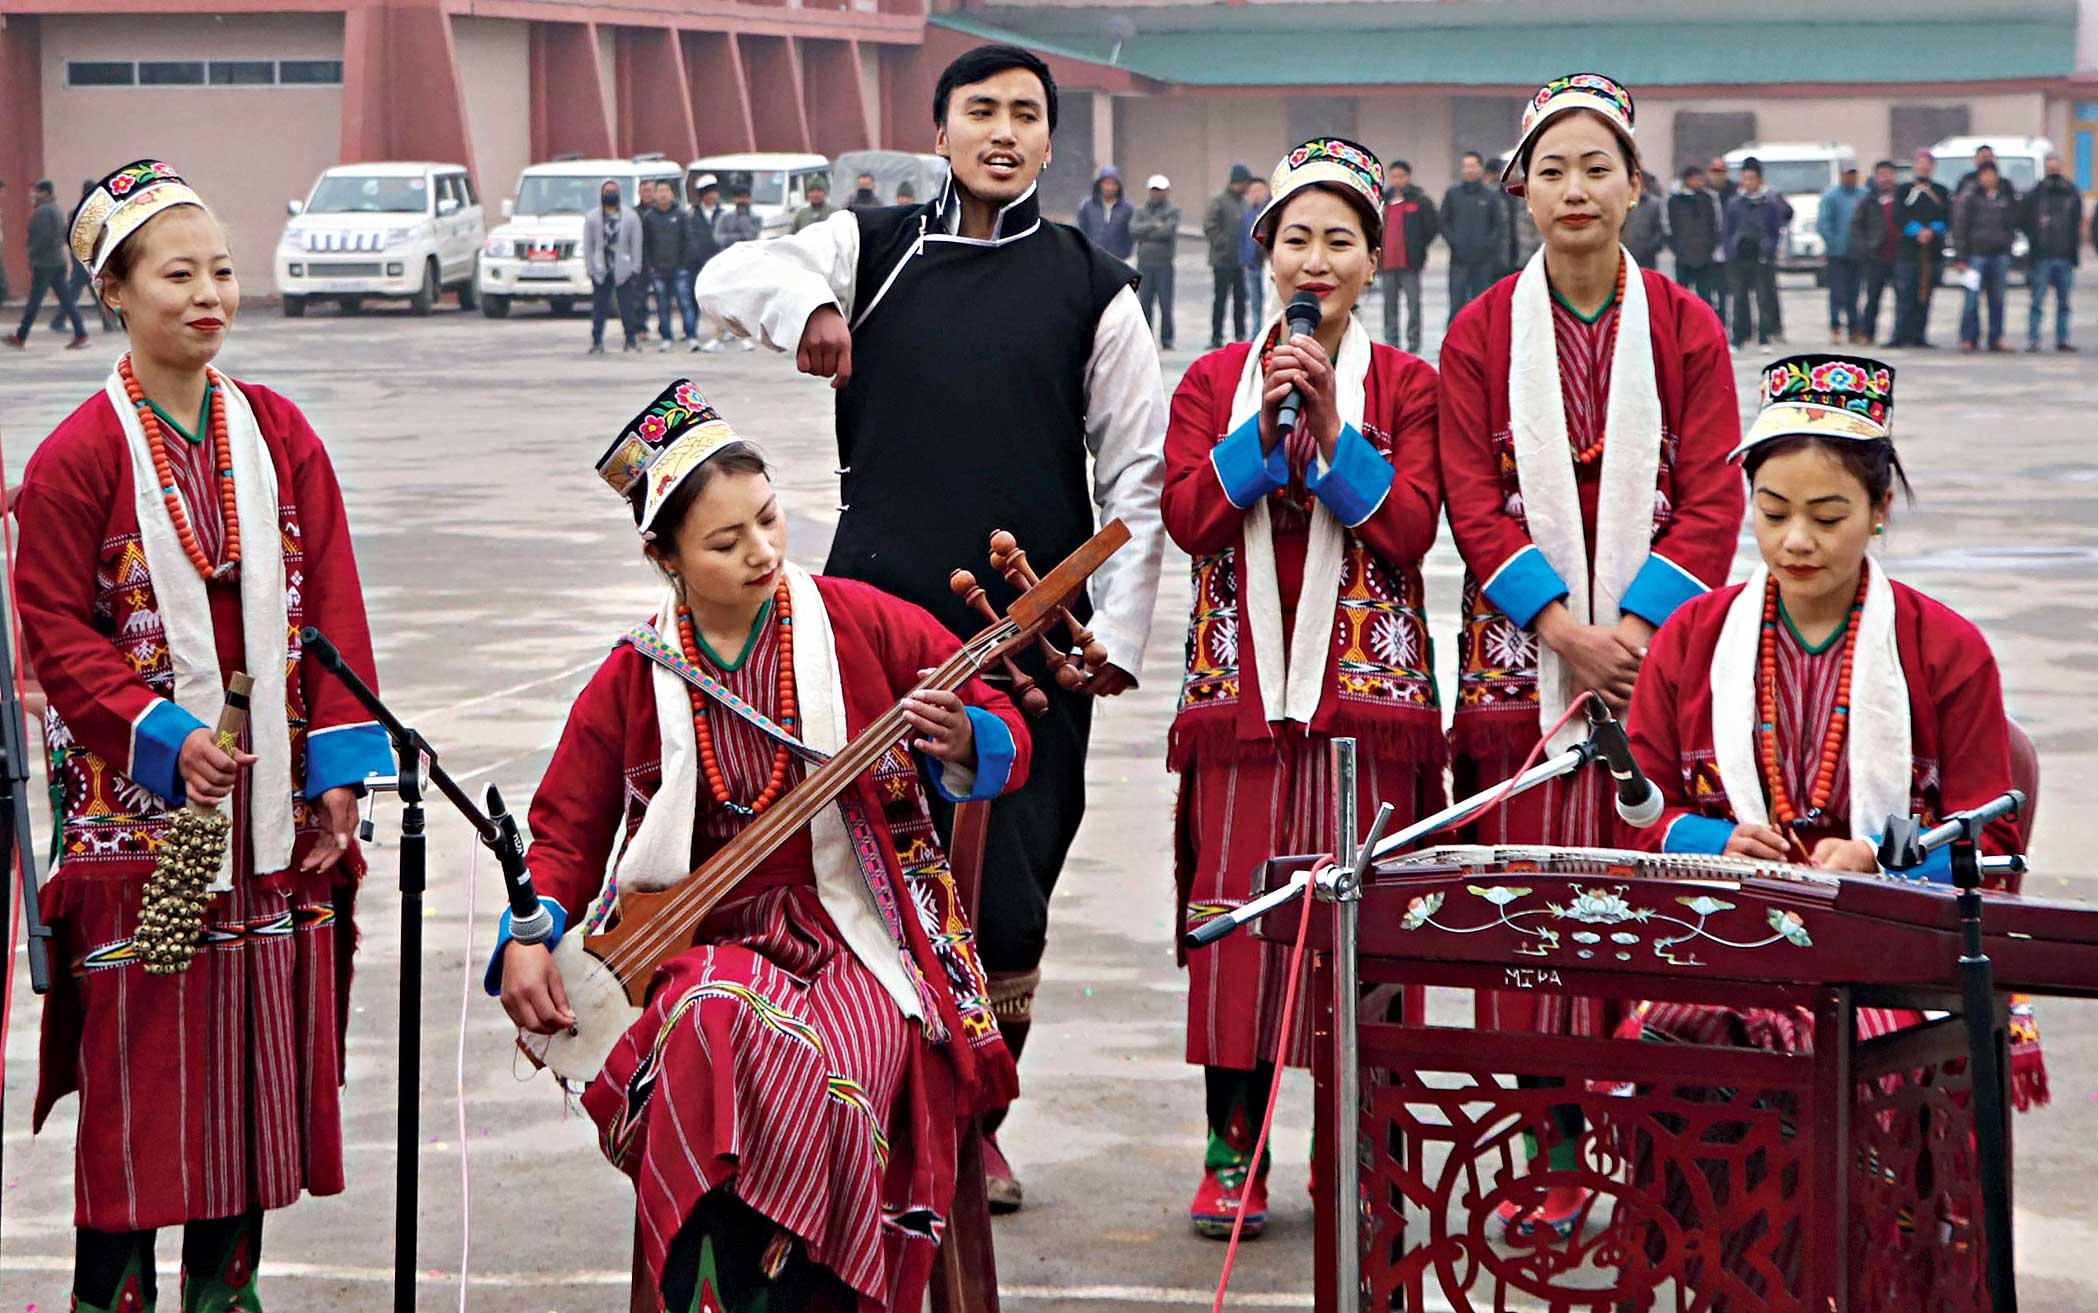 Artistes perform during the 34th Statehood Day of Arunachal Pradesh in Tawang district on Thursday.